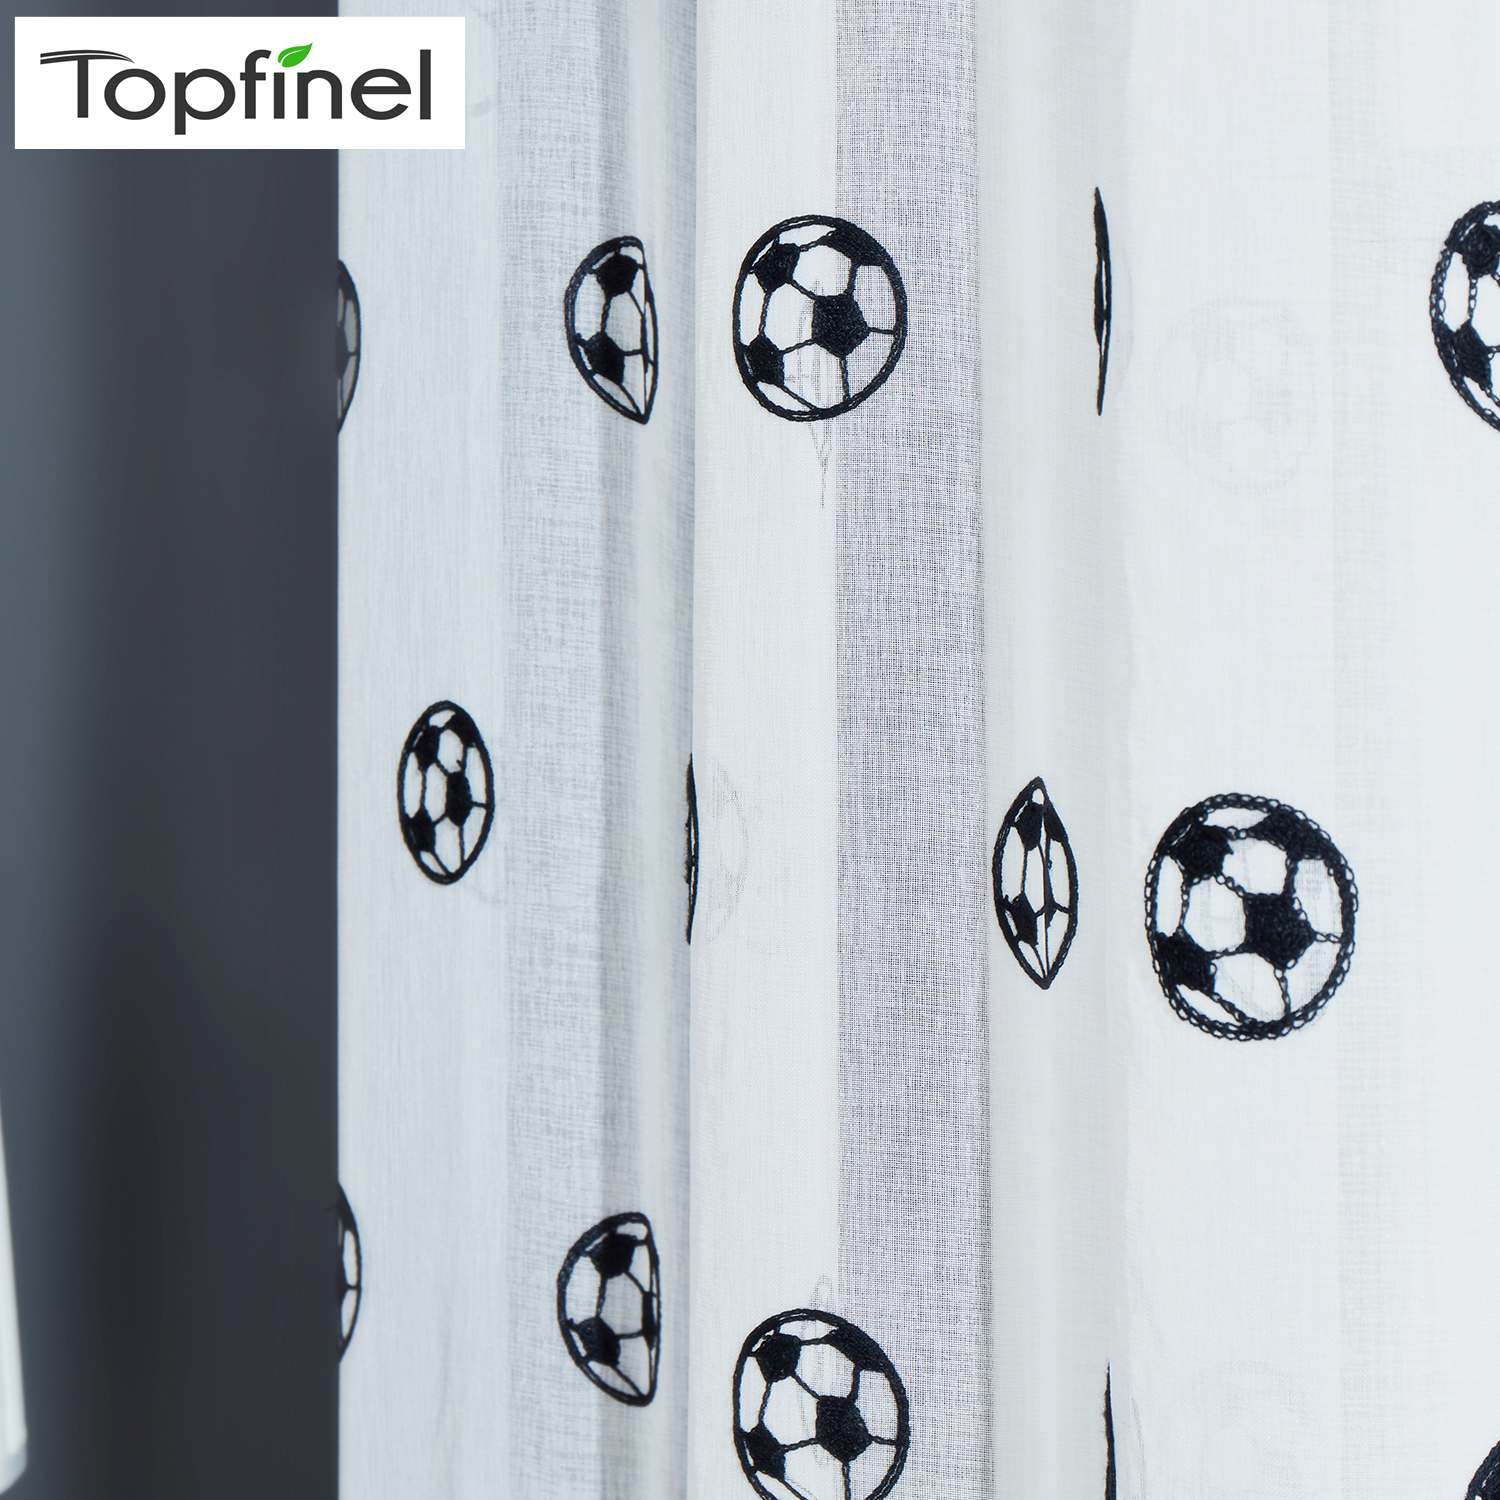 Topfinel Football Curtains Embroidered Children Curtains Boys Sheer Curtains for Living Room Bedroom Tulle White Voile Curtains in Curtains from Home Garden